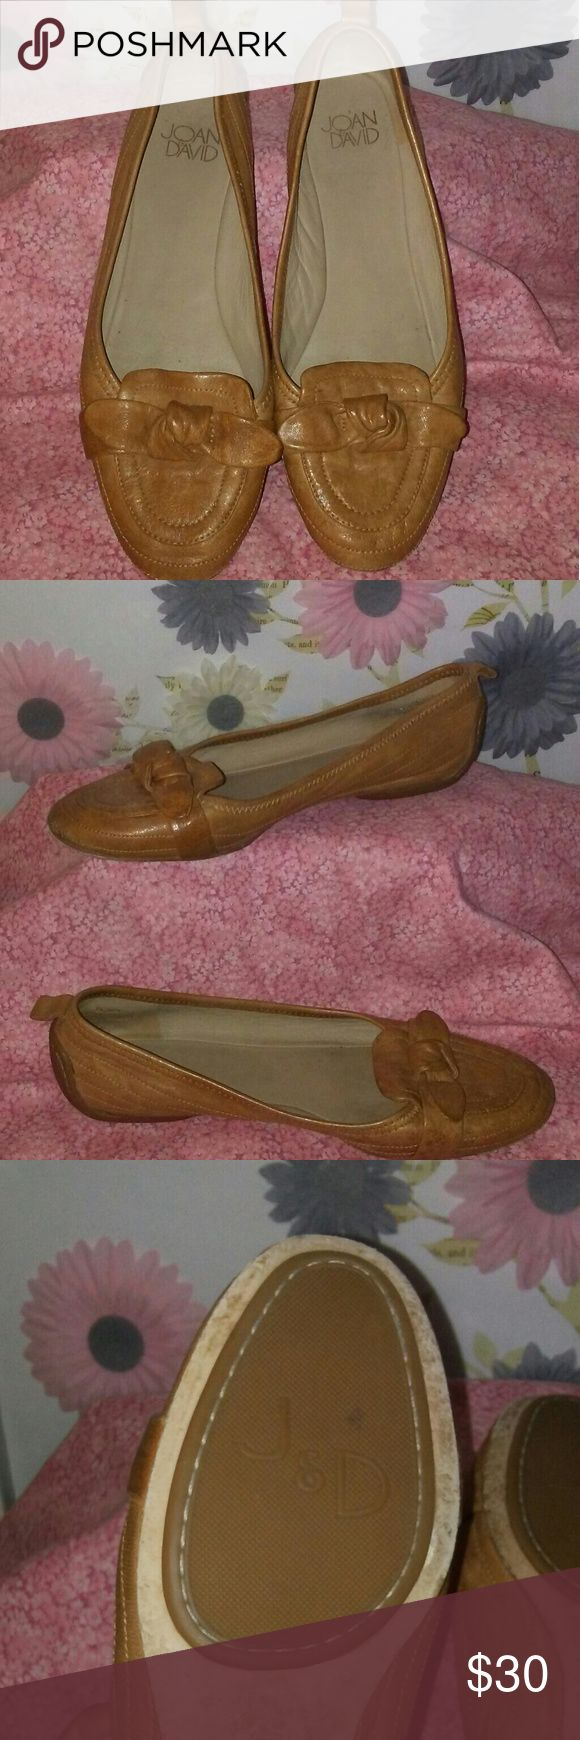 Joan&David Knot Bow Tan Loafers New! In great condition Only tried on once Very comfortable and stylish Leather sole Joan & David Shoes Flats & Loafers